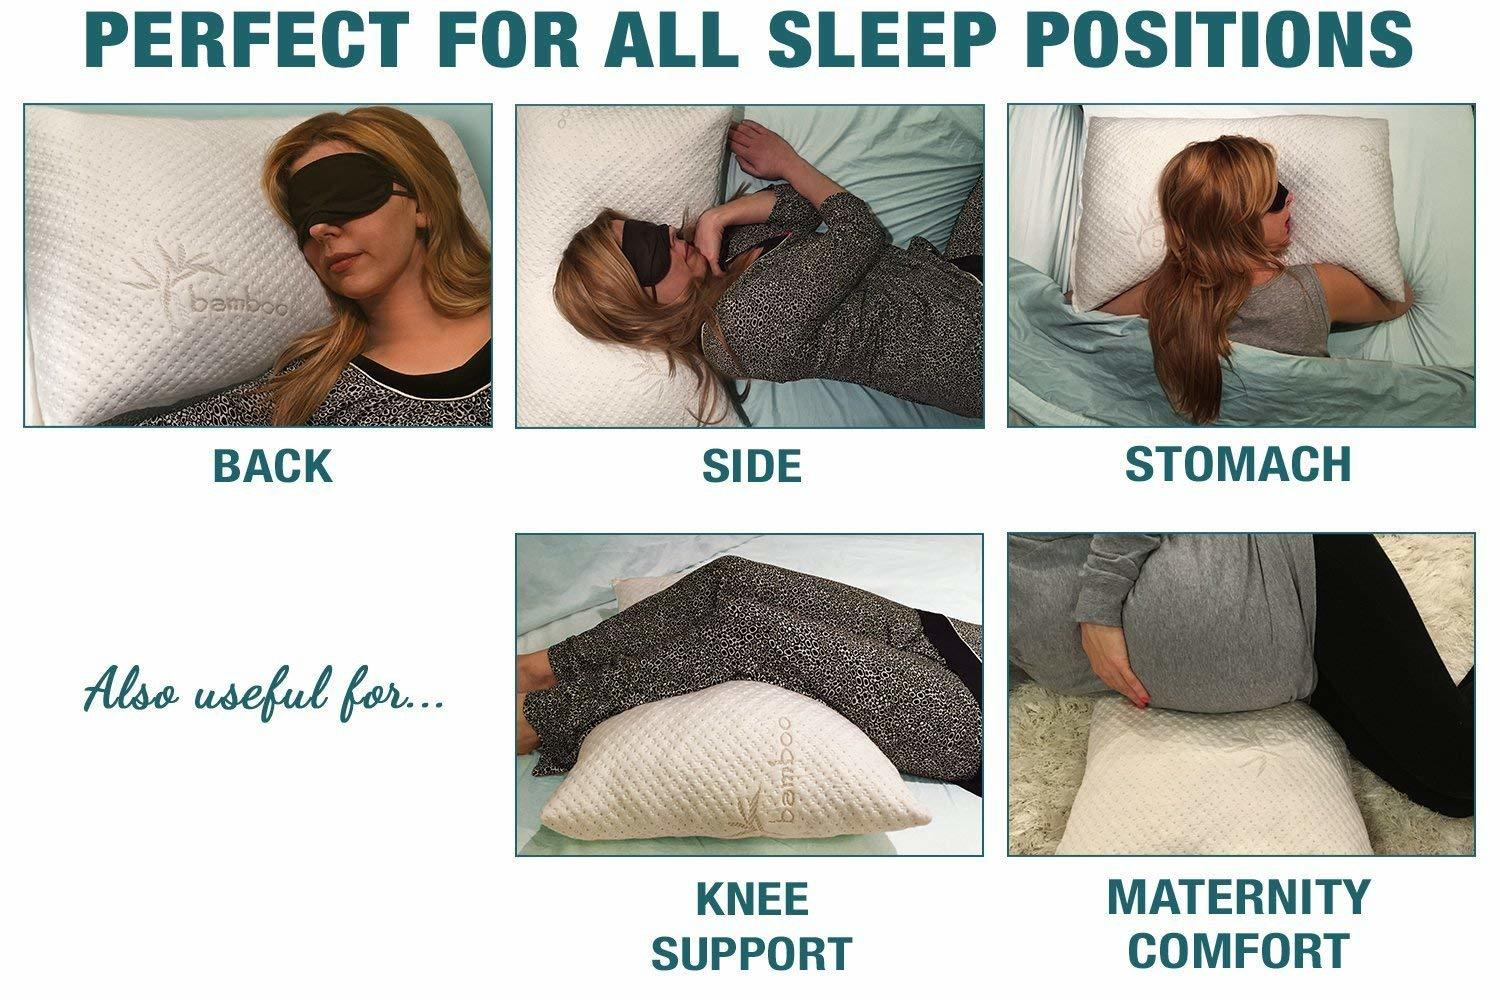 extreme comforts king size- memory foam pillows